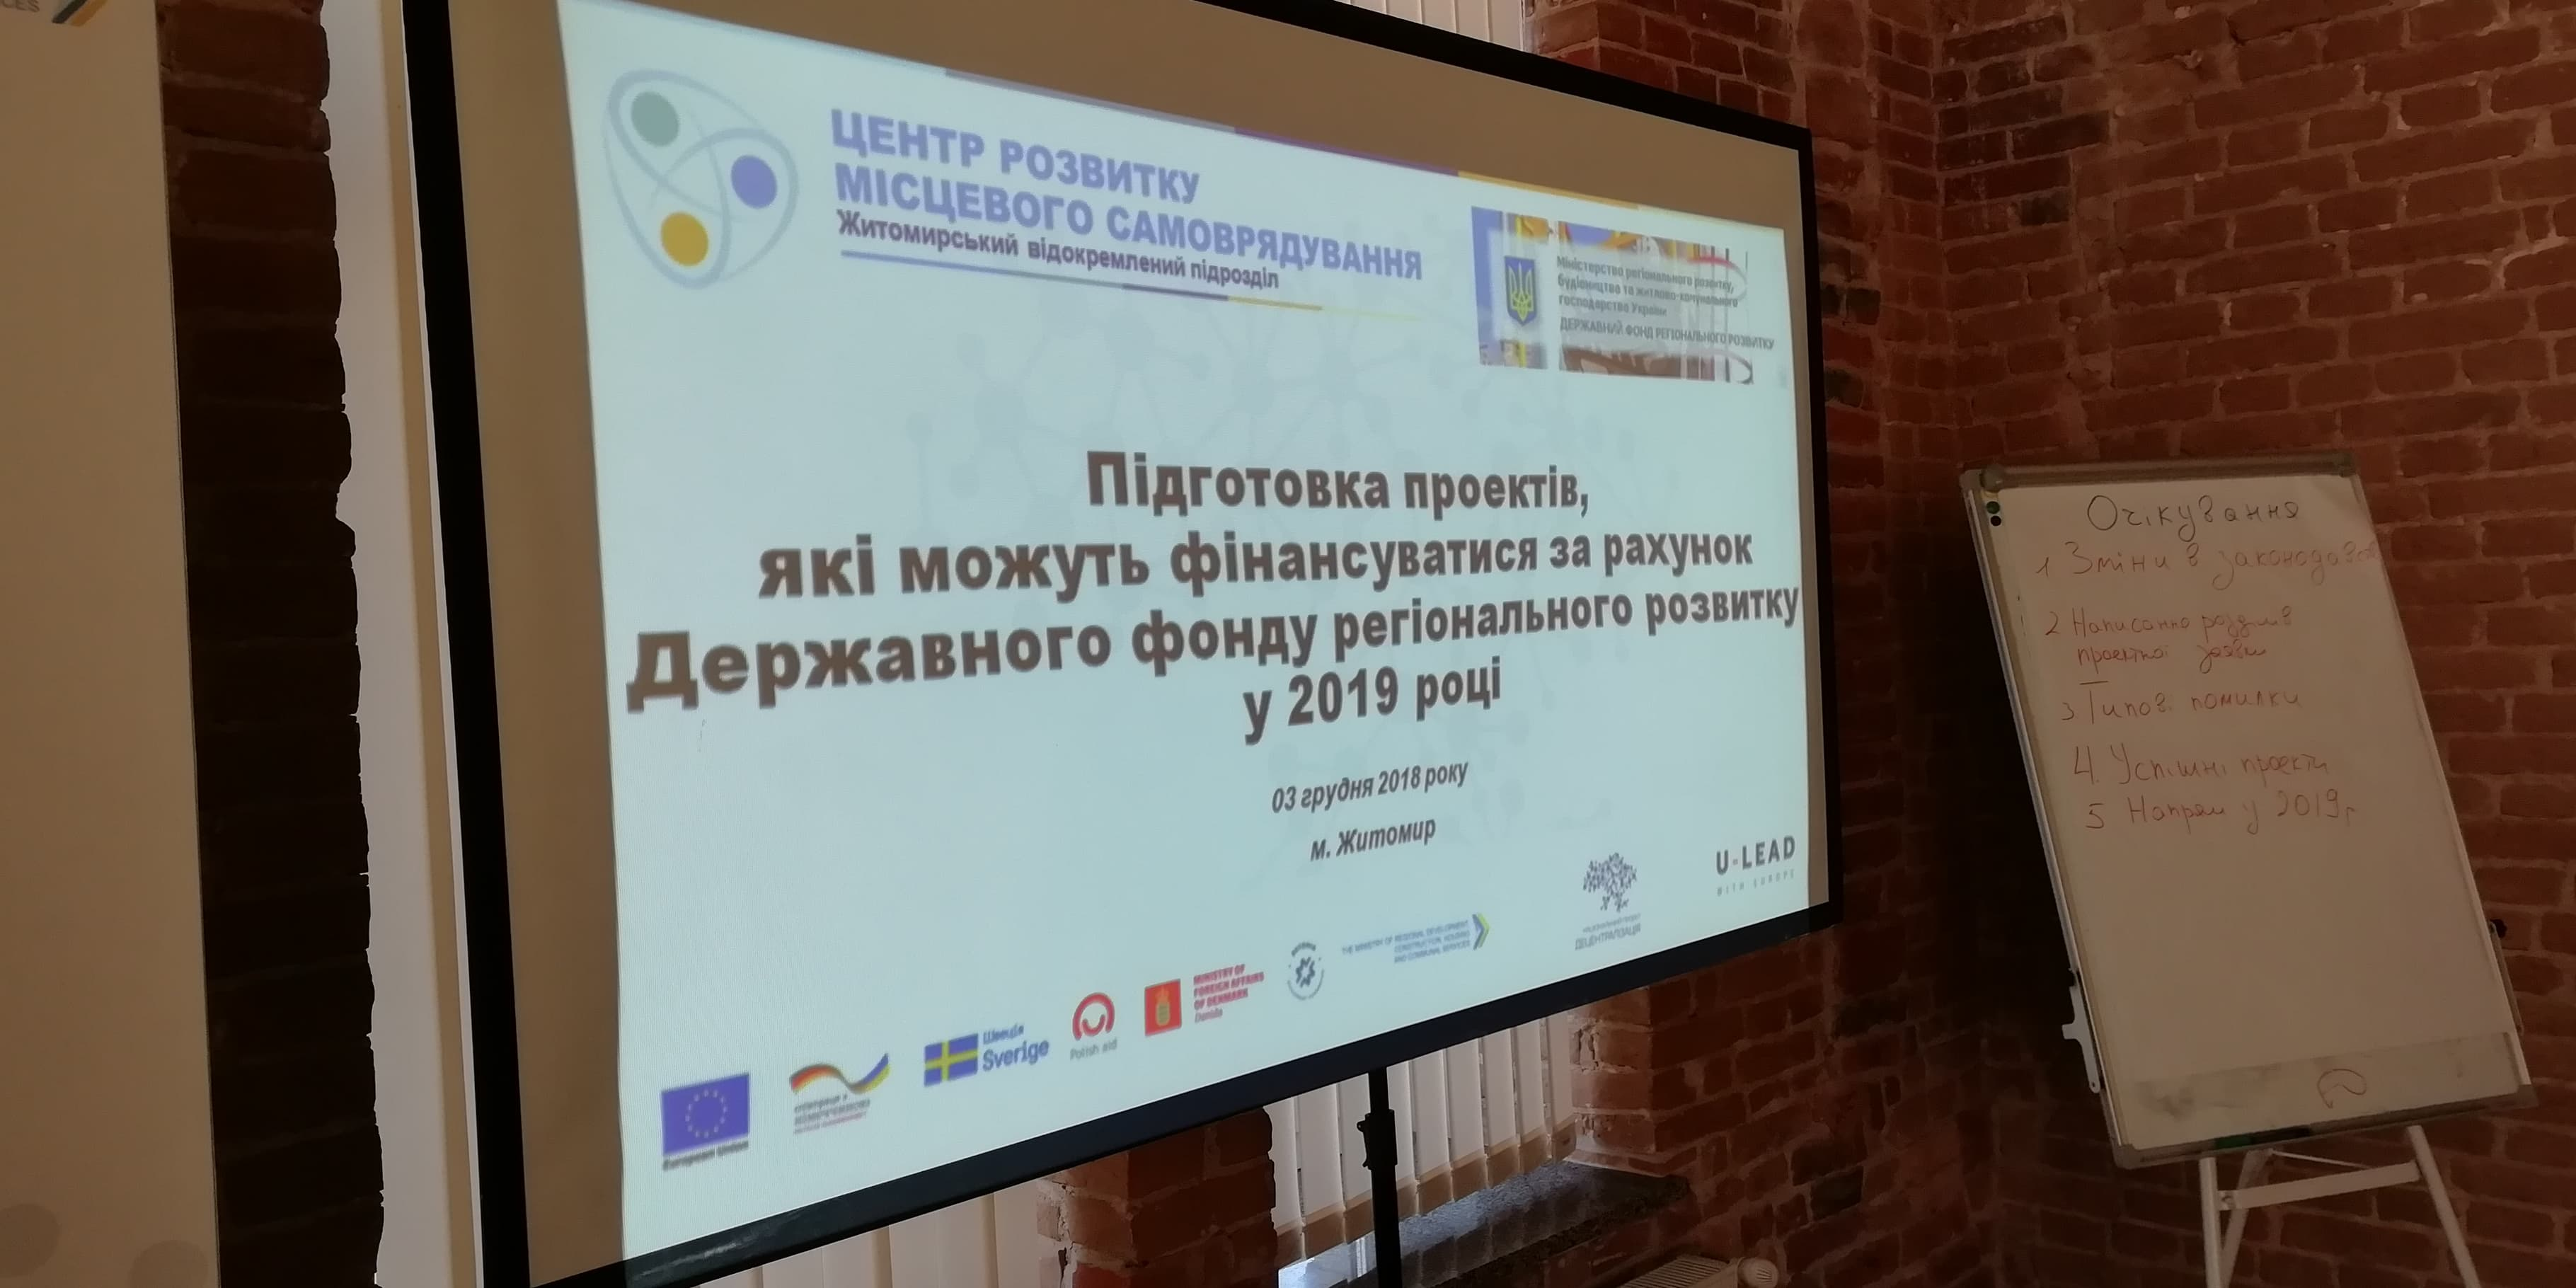 Project managers of hromadas are preparing for competition of projects to be financed from SFRD